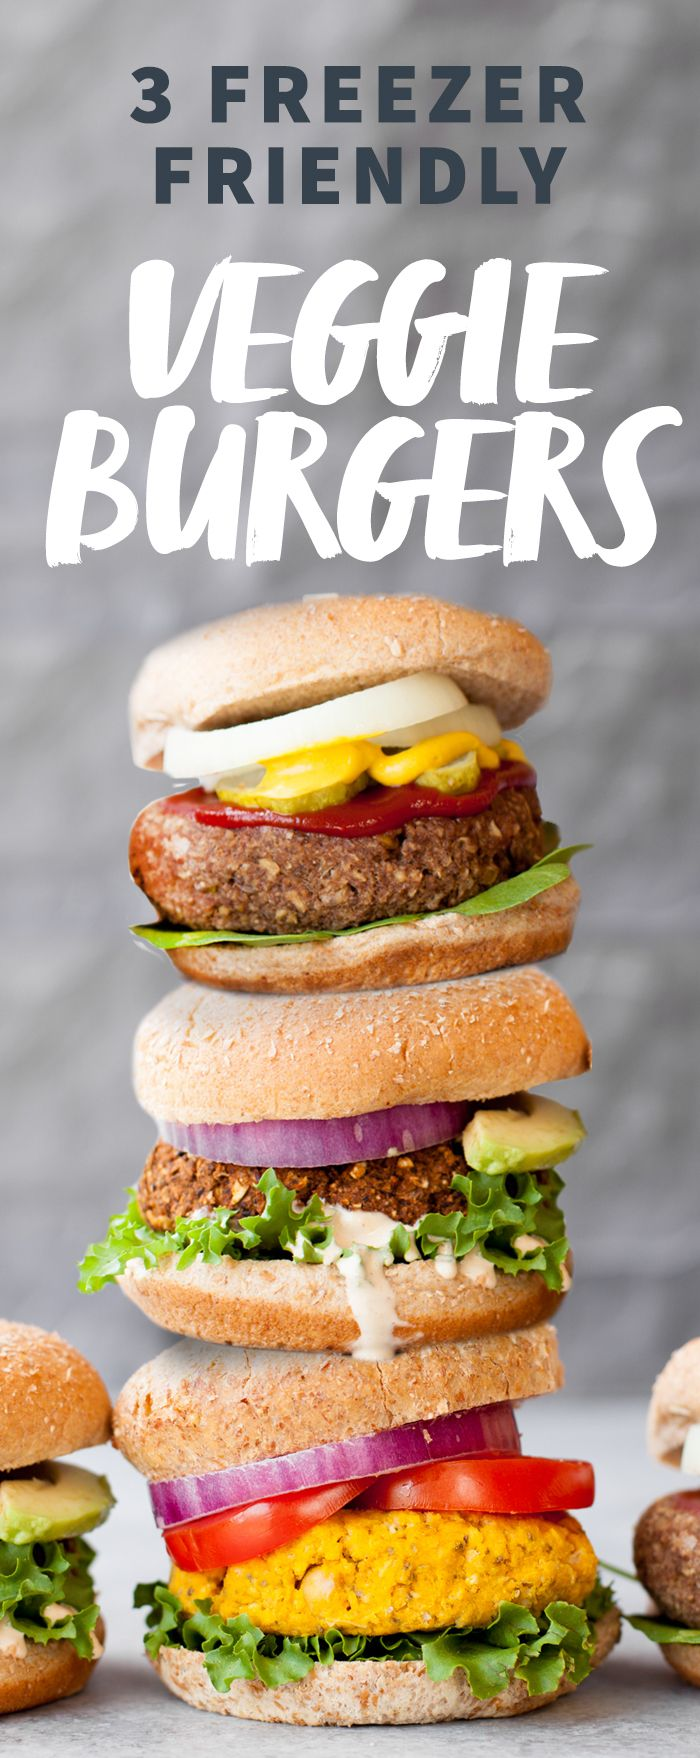 Stock Your Freezer with These 3 Awesome Veggie Burgers #ad